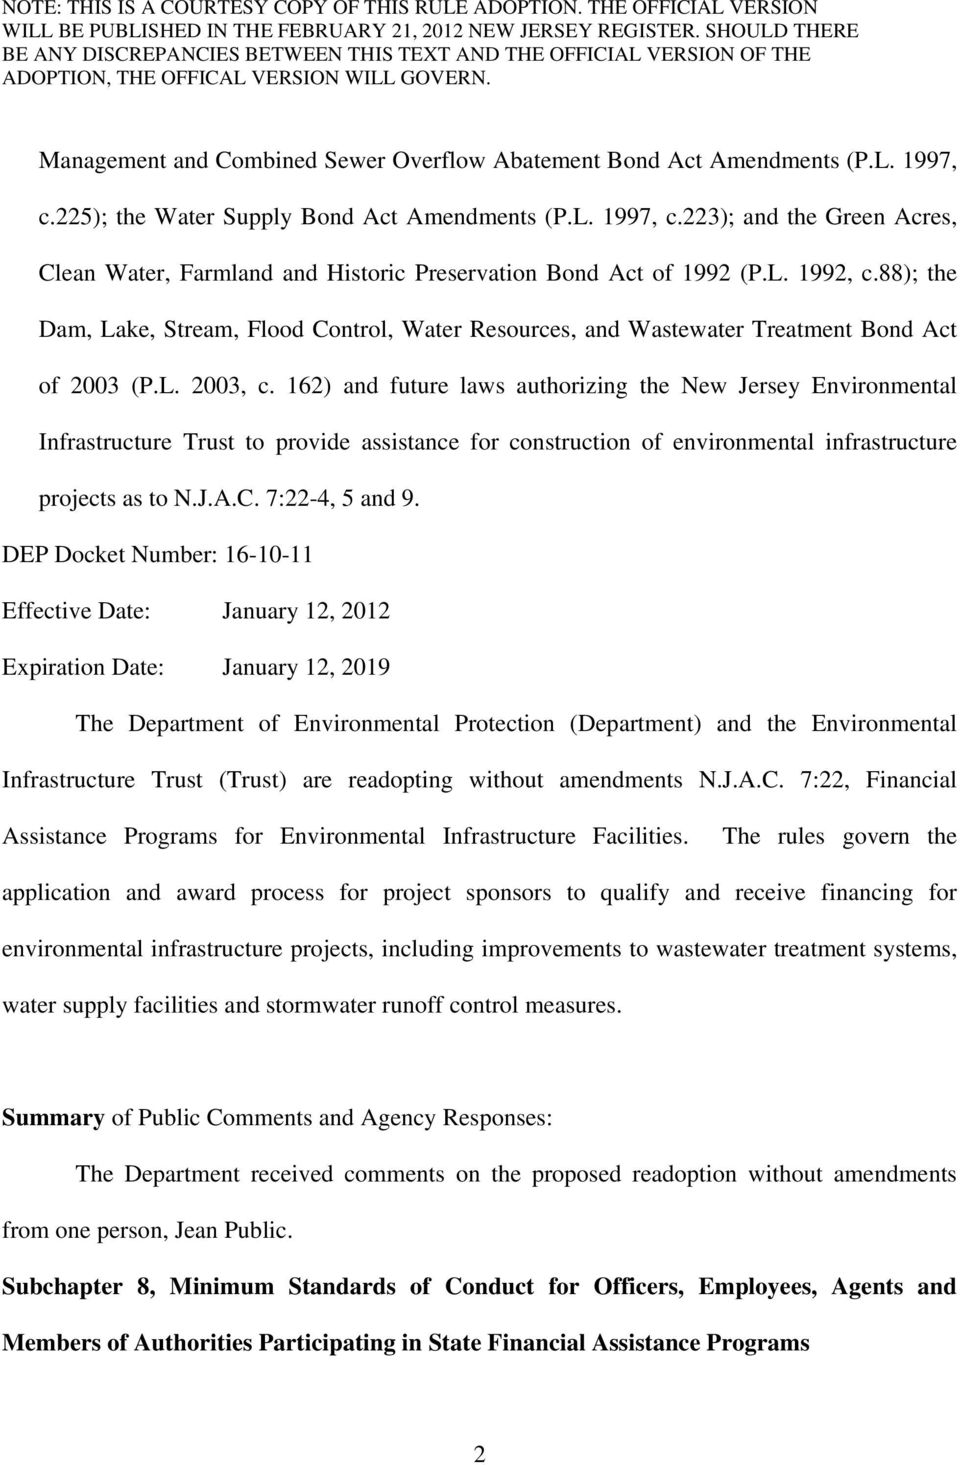 162) and future laws authorizing the New Jersey Environmental Infrastructure Trust to provide assistance for construction of environmental infrastructure projects as to N.J.A.C. 7:22-4, 5 and 9.